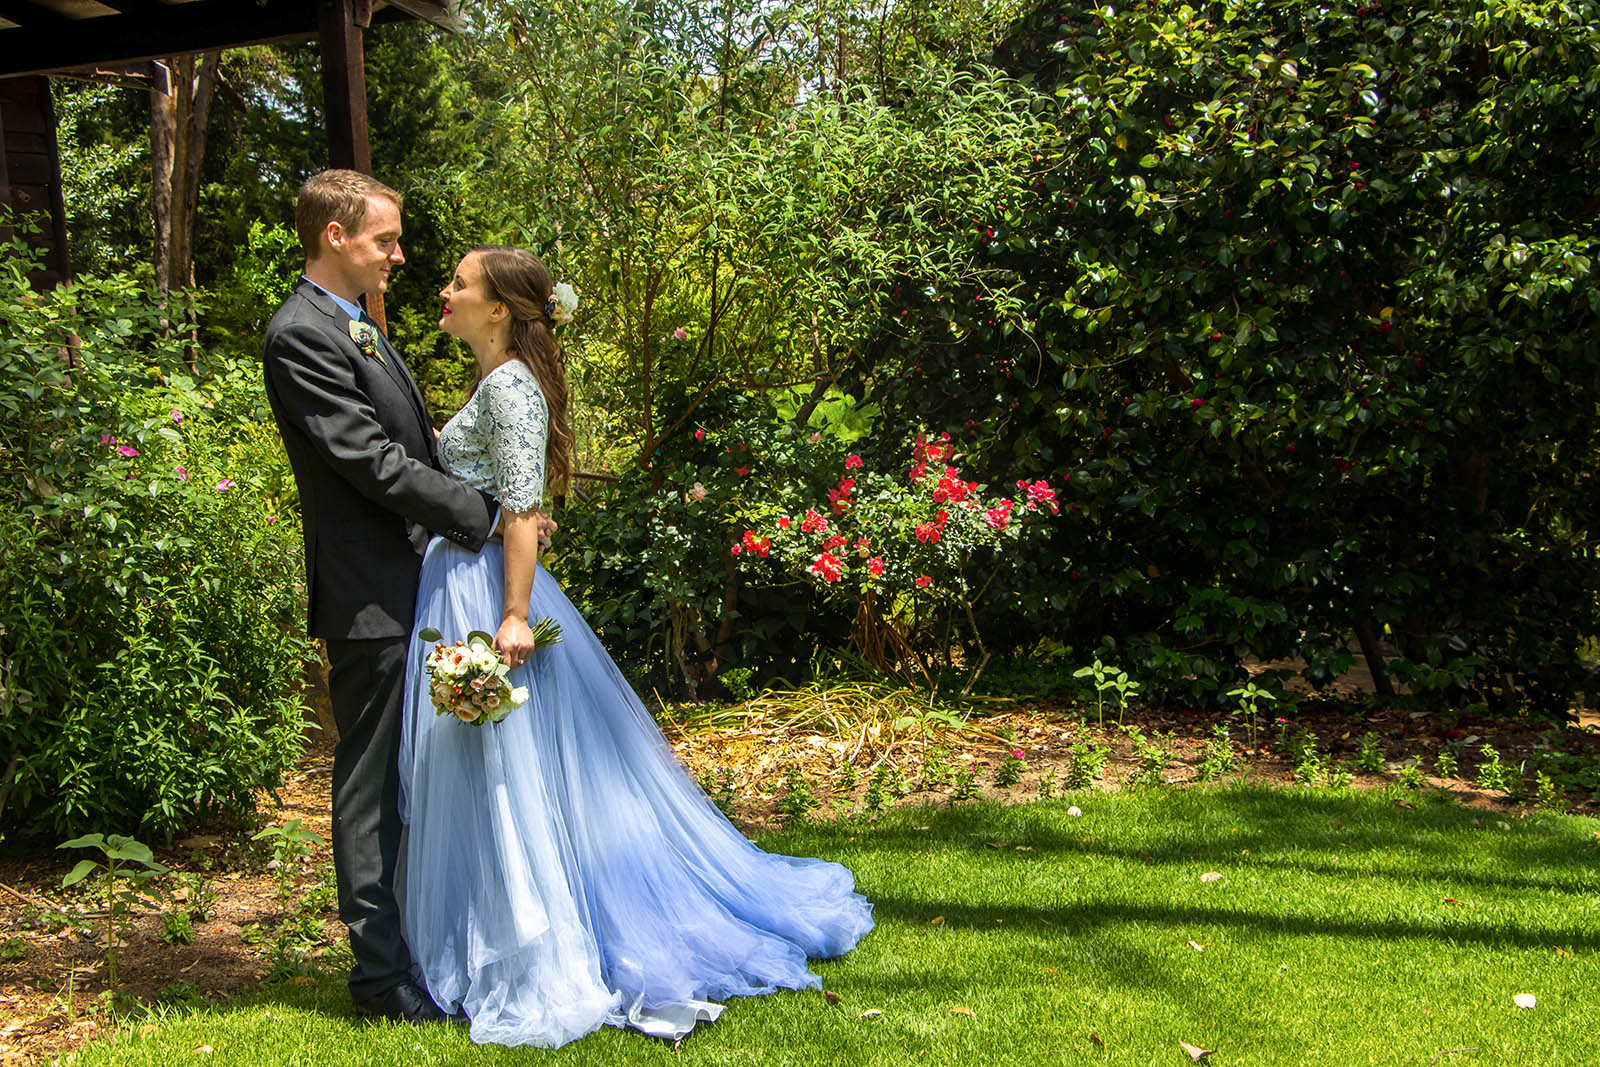 Bride and groom embracing each other at Araluen Botanic Park, Perth